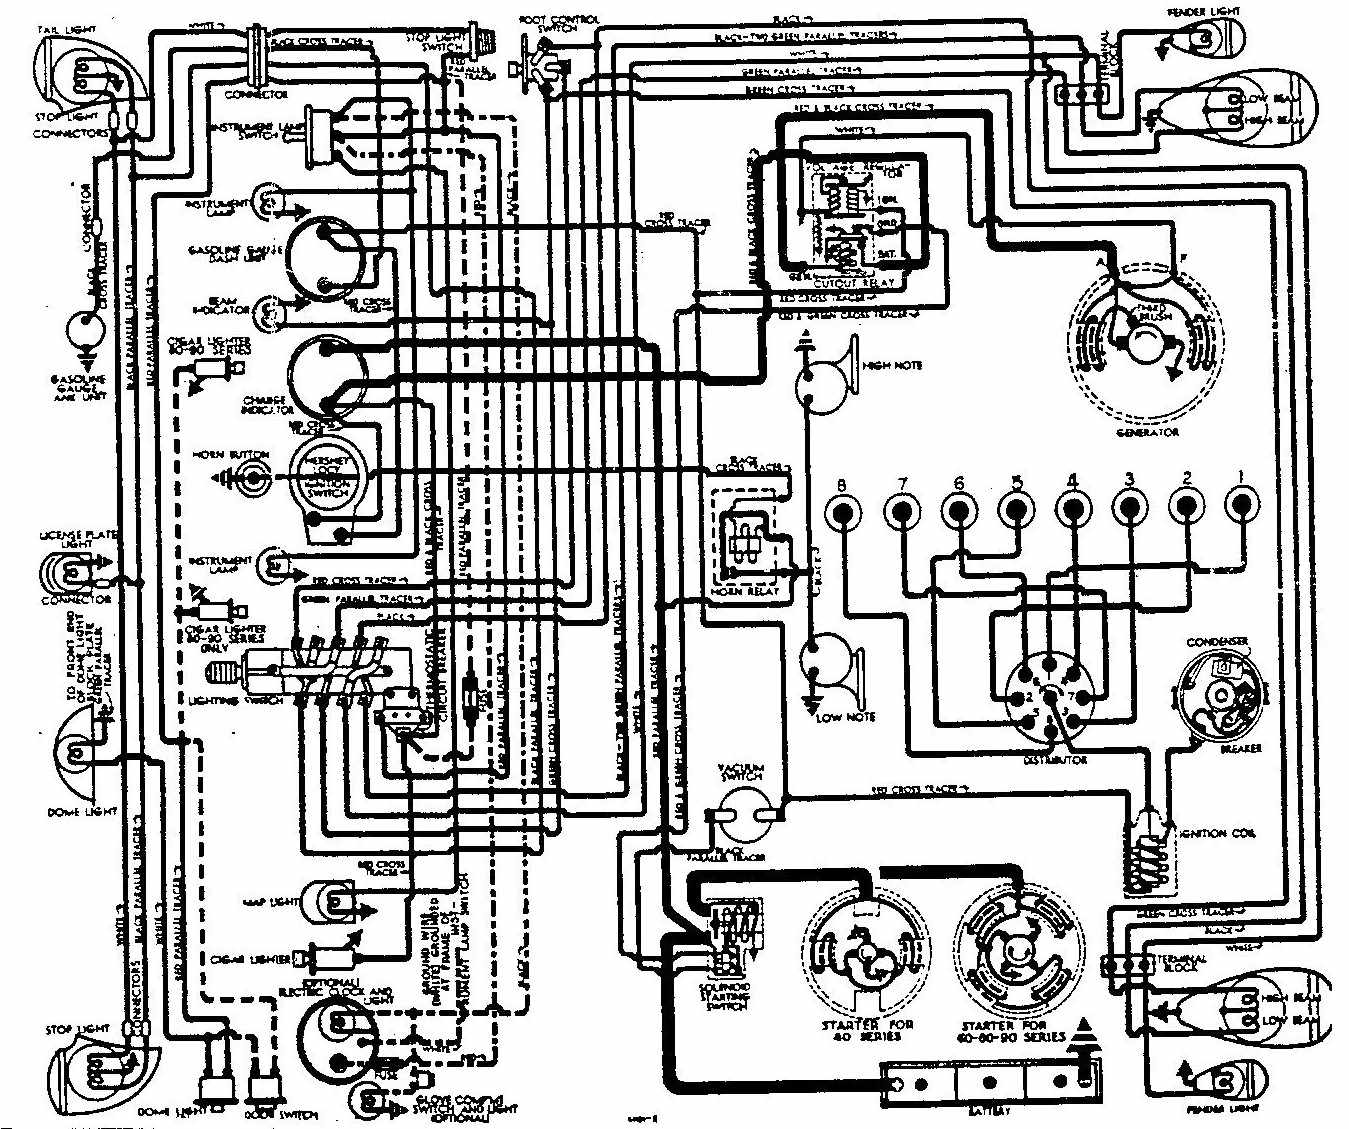 Stunning 8n Ford Tractor Wiring Diagram Pictures Inspiration ...